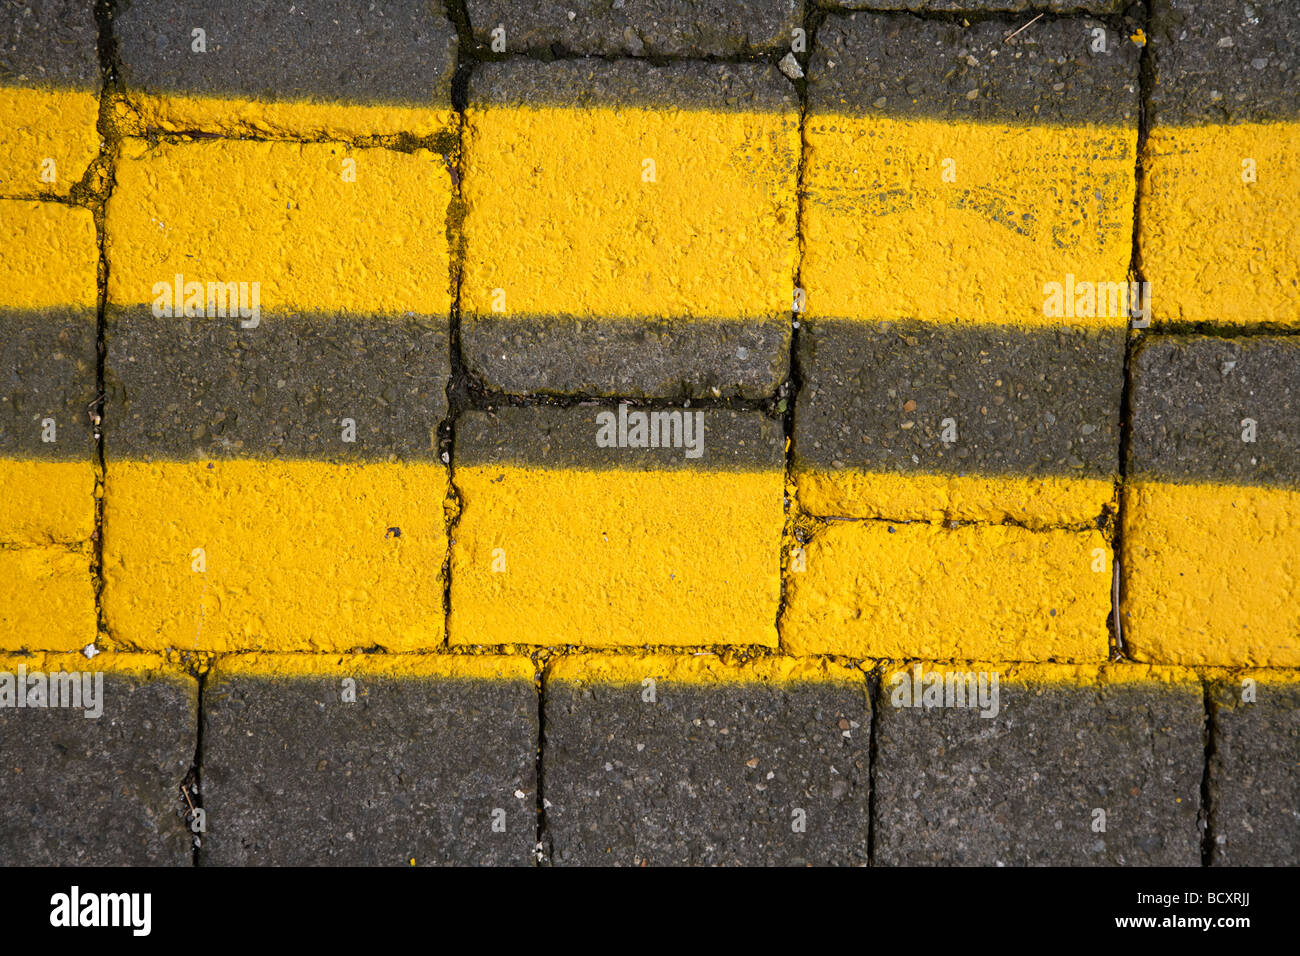 freshly painted double yellow lines on a cobblestone street in dublin republic of ireland - Stock Image